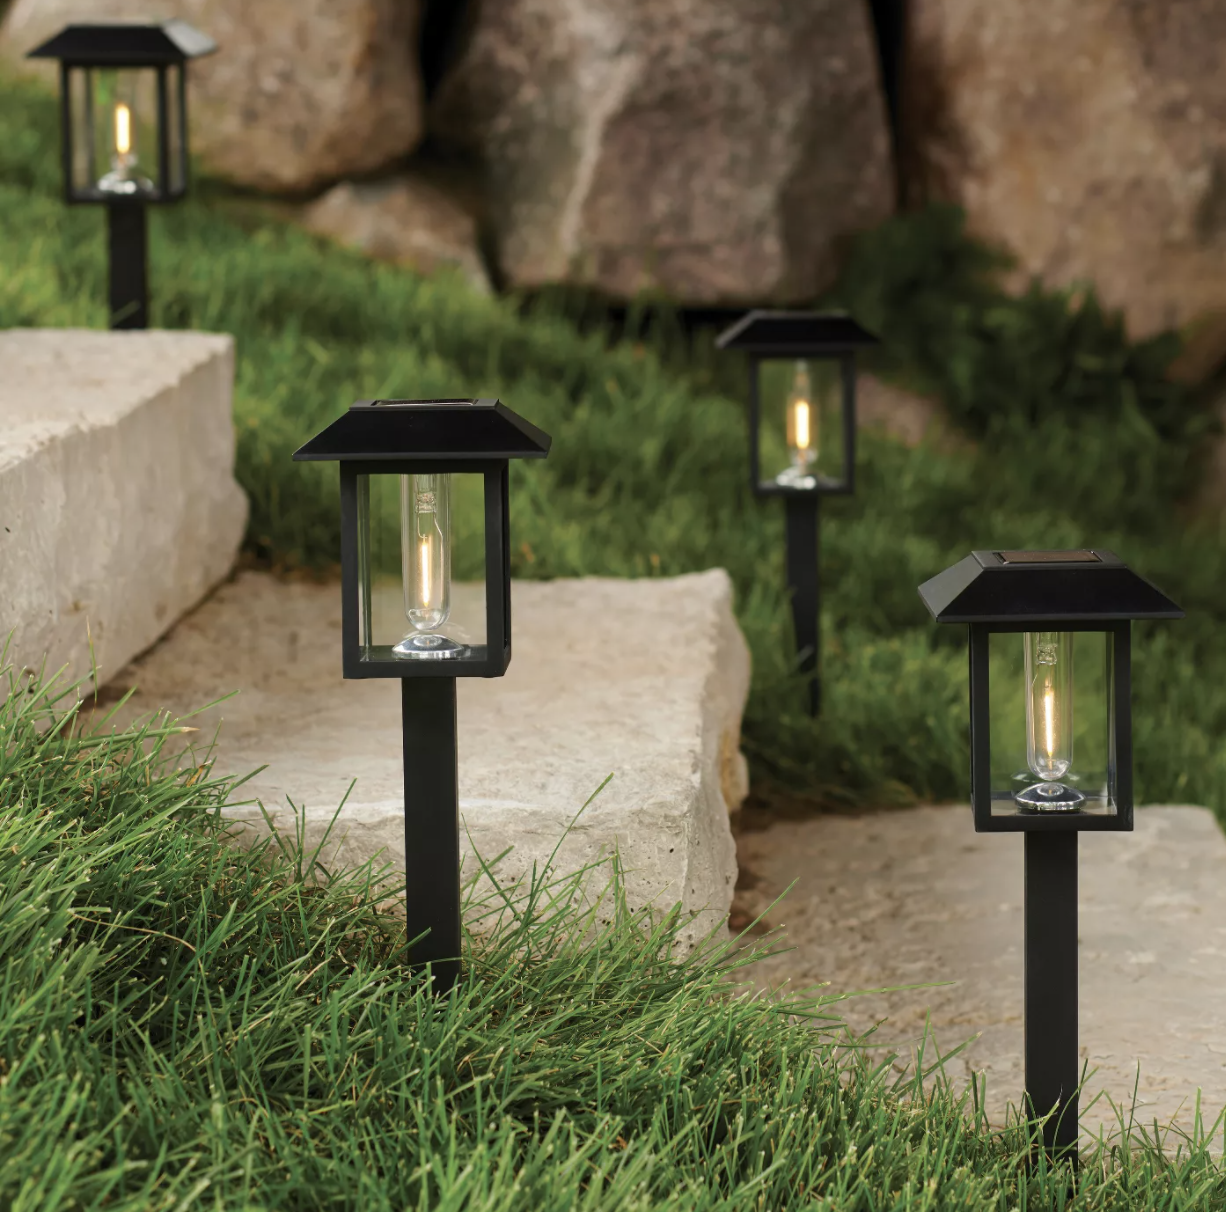 A set of pathway lights sticking out of the grass on both sides of a set of a stairs